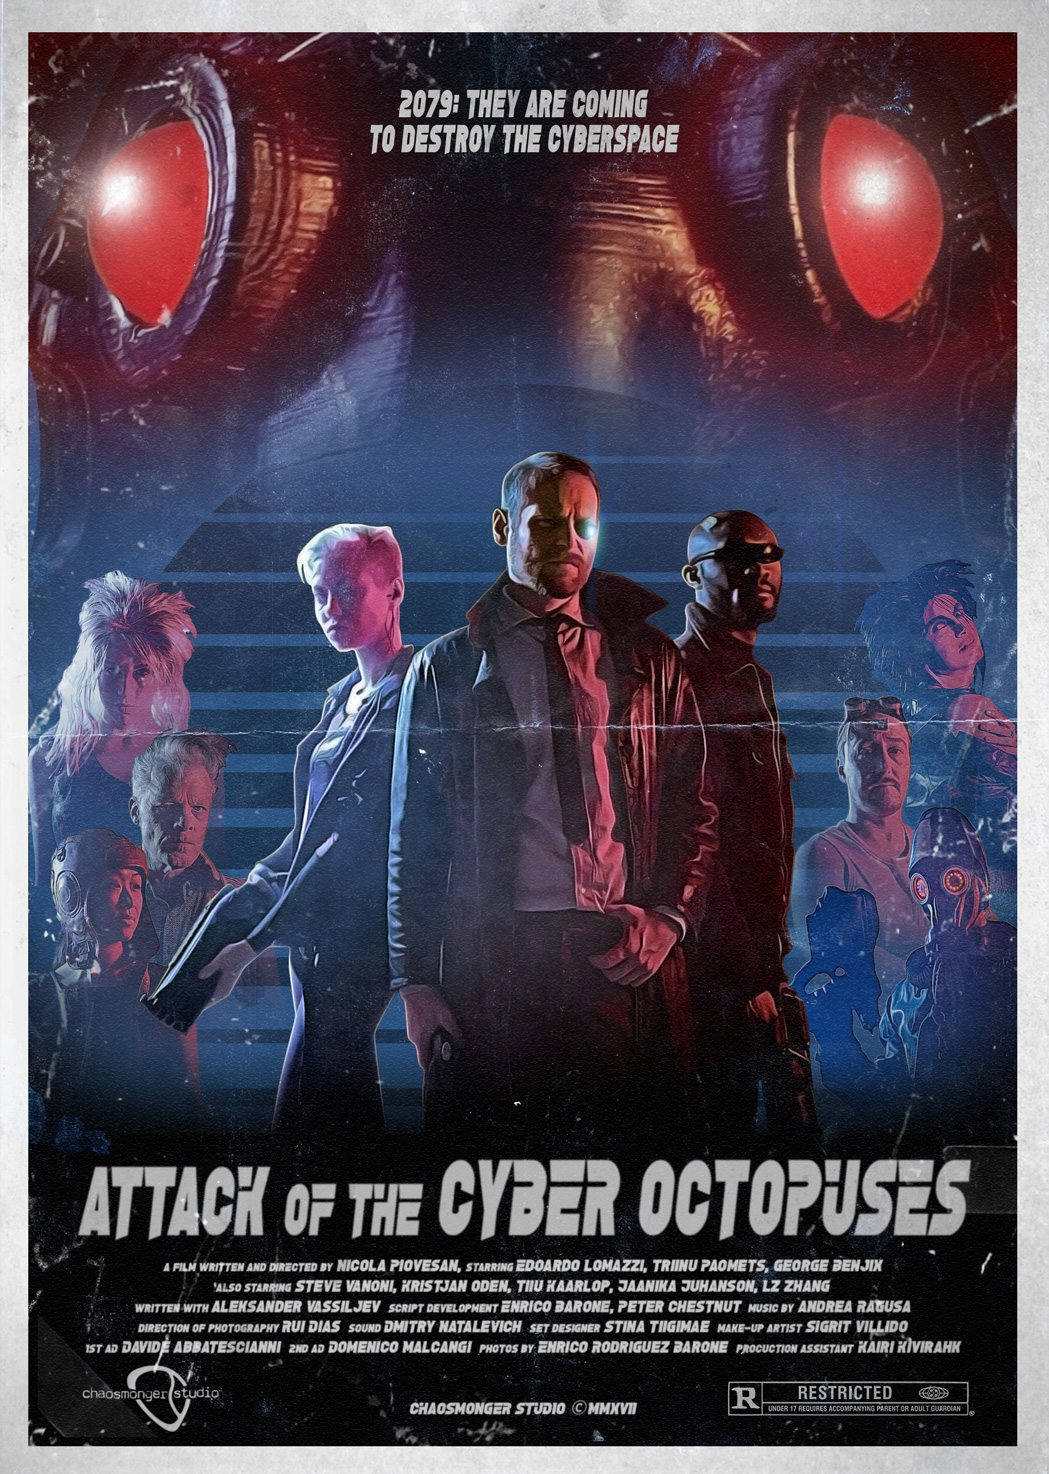 Attack of the Cyber Octopuses!